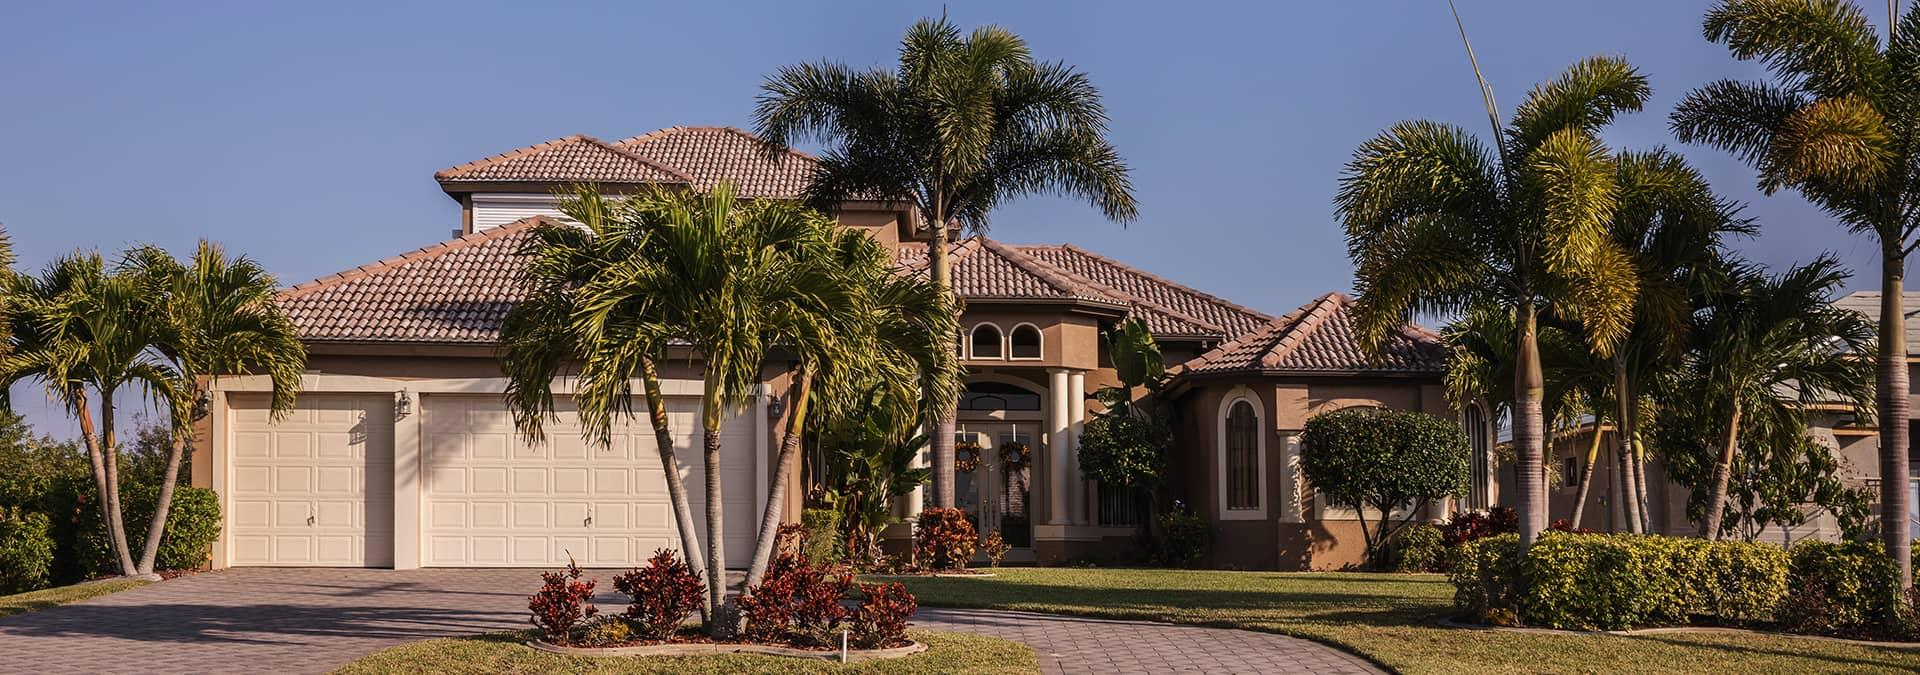 street view of a home in fleming island florida